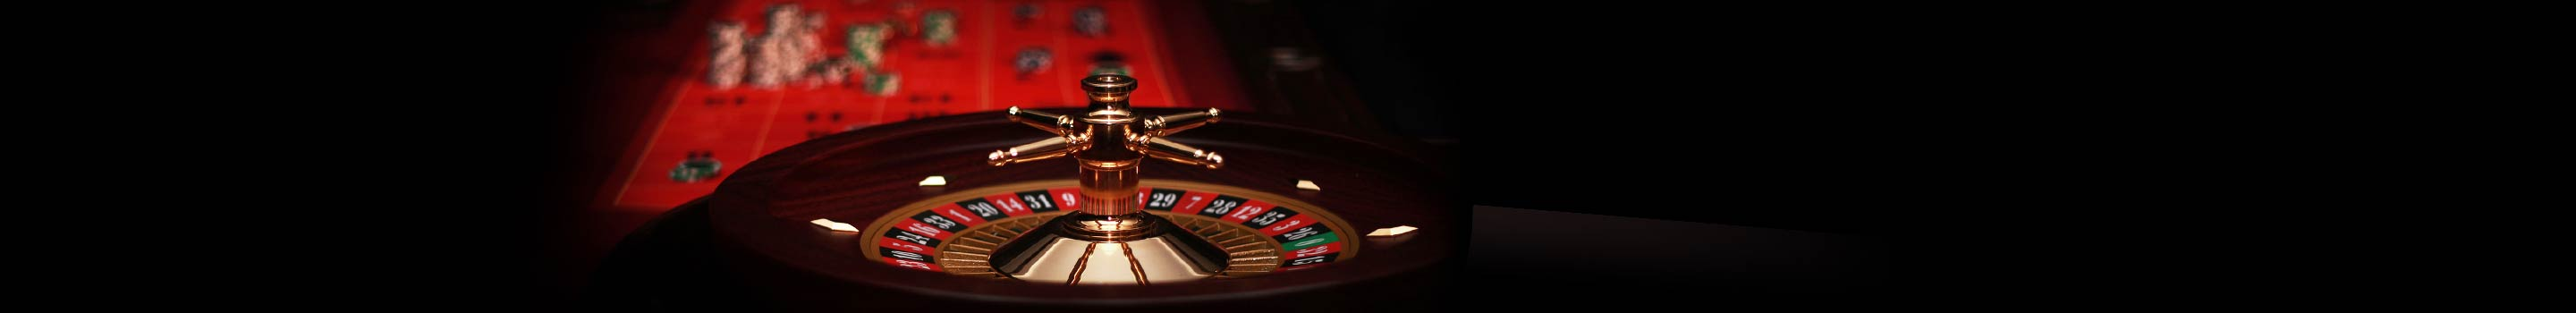 Roulette systems and game strategies